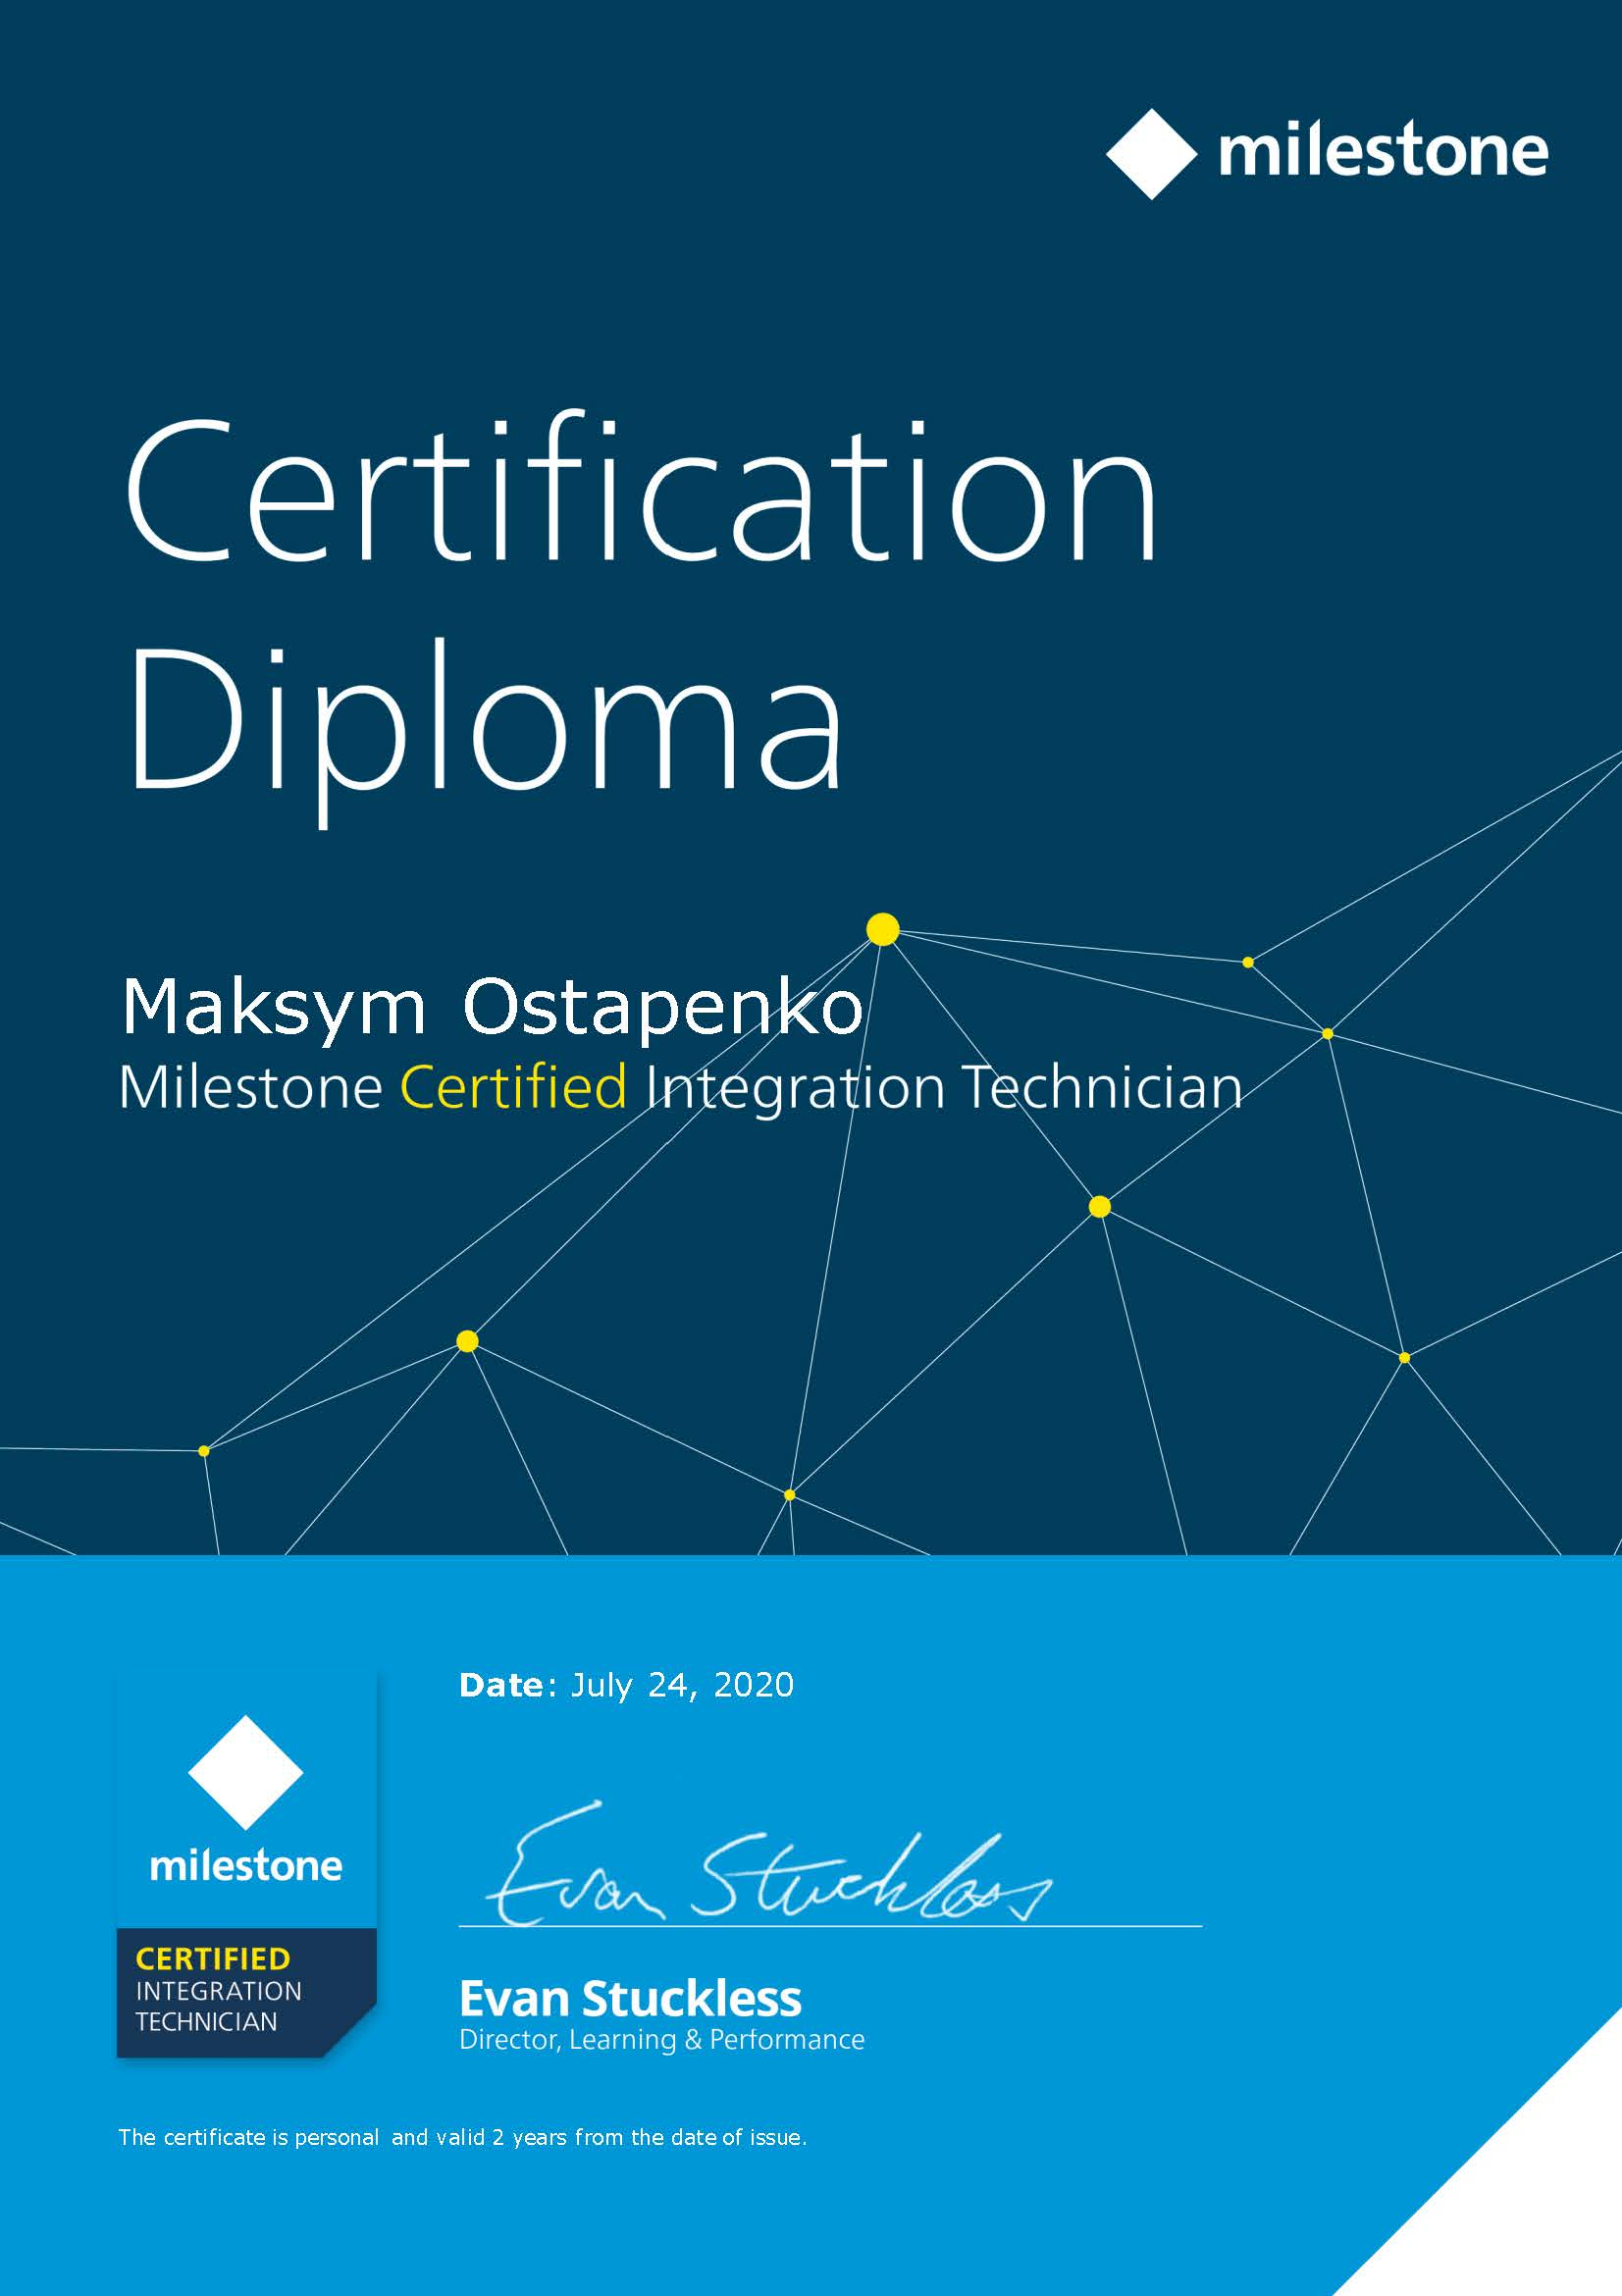 Milestone_Certified_Integration_Technician_MCIT_Assessment